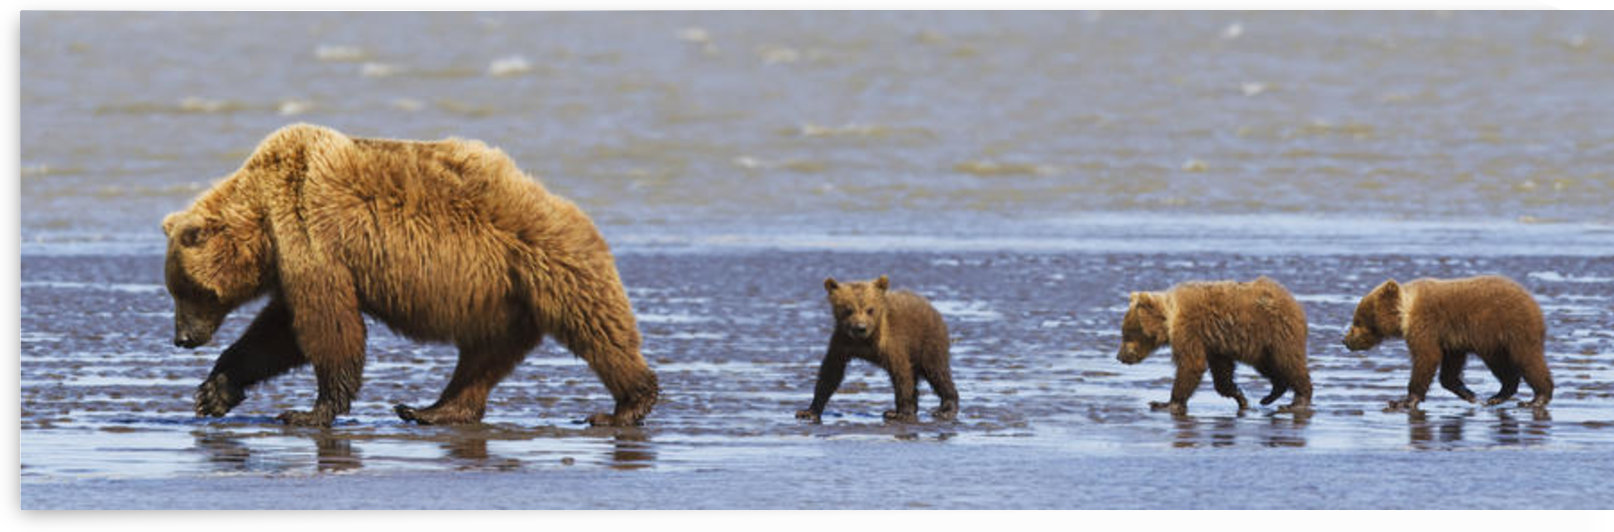 Brown Bear Sow And Her Three Cubs Walking On A Beach At Lake Clarke National Park; Alaska United States Of America by PacificStock